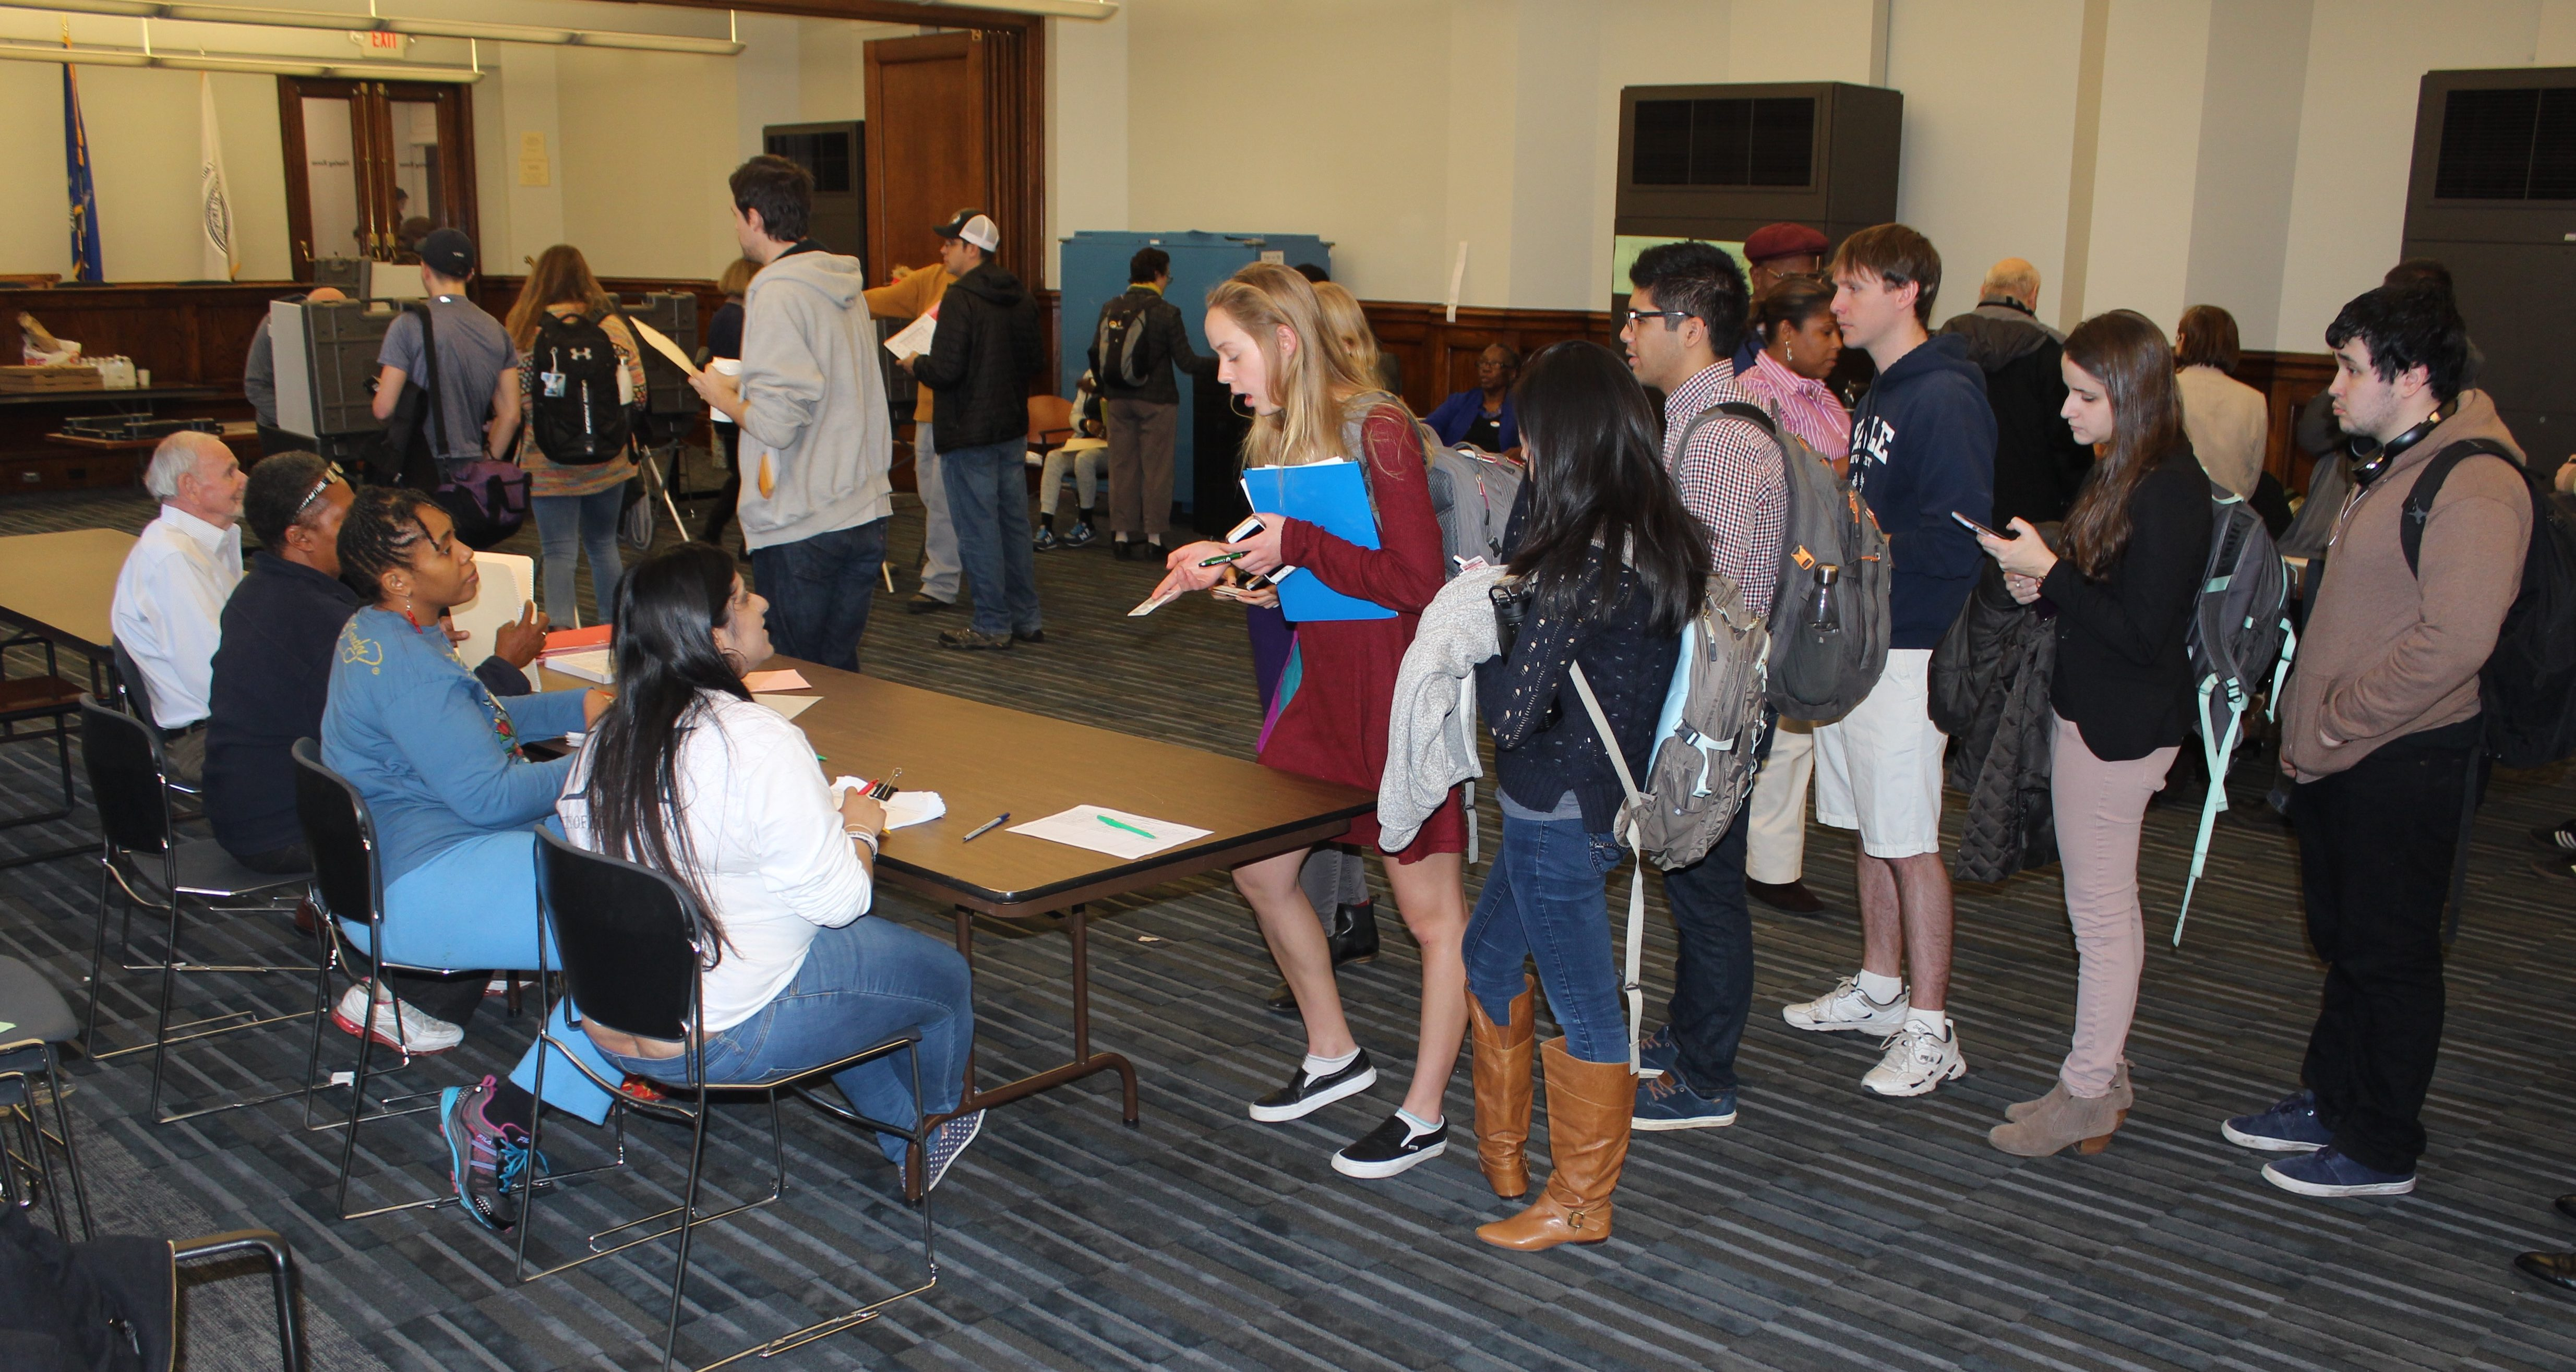 The first-time voters line filled with Yale students